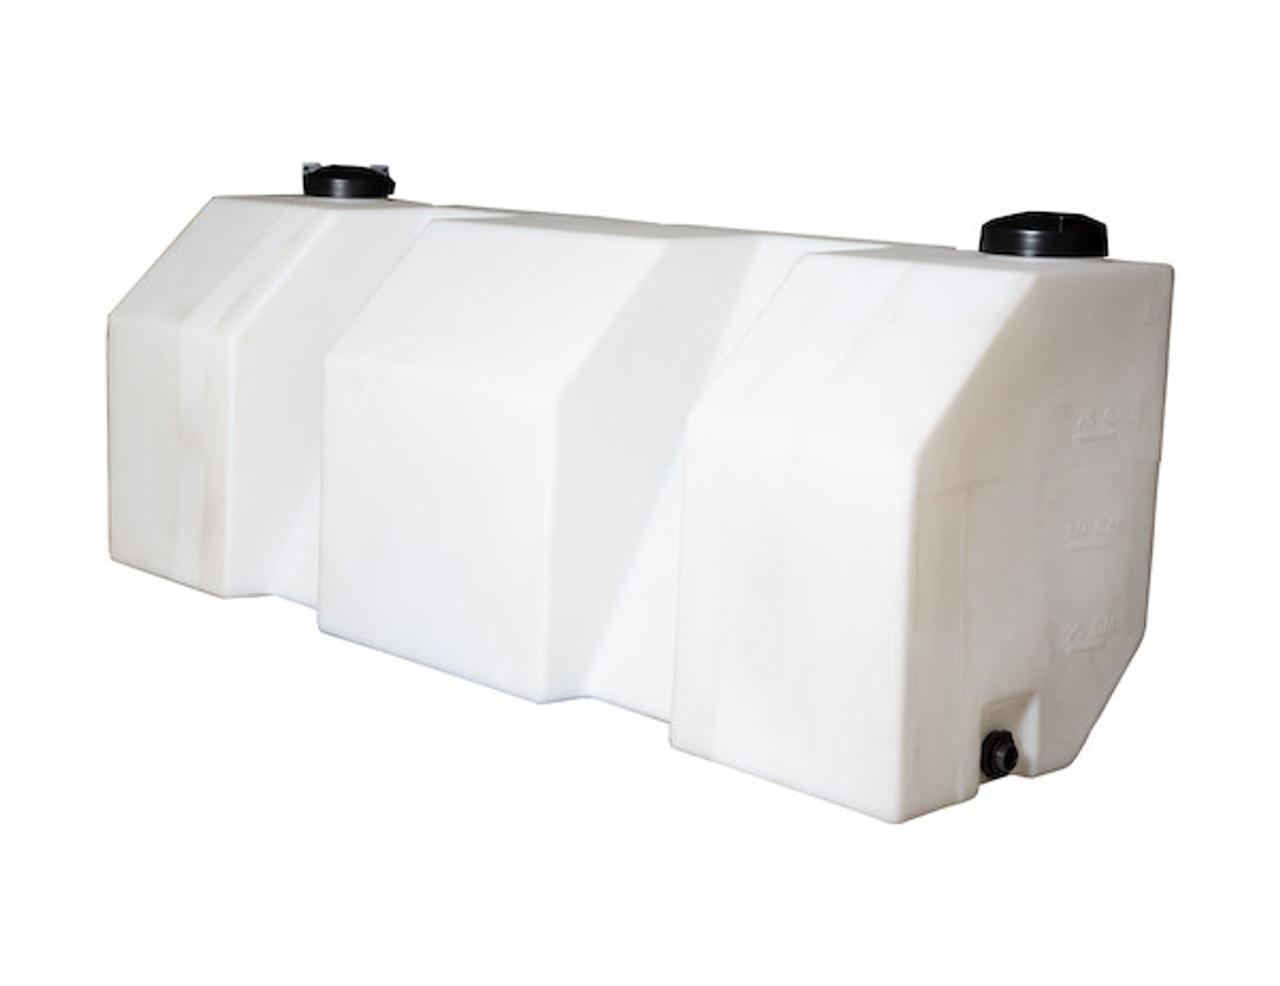 LS4H Buyers SaltDogg  Pre-Wet Kit With One 105-Gallon Wedge Poly V-Box Mount Reservoir  Picture # 6